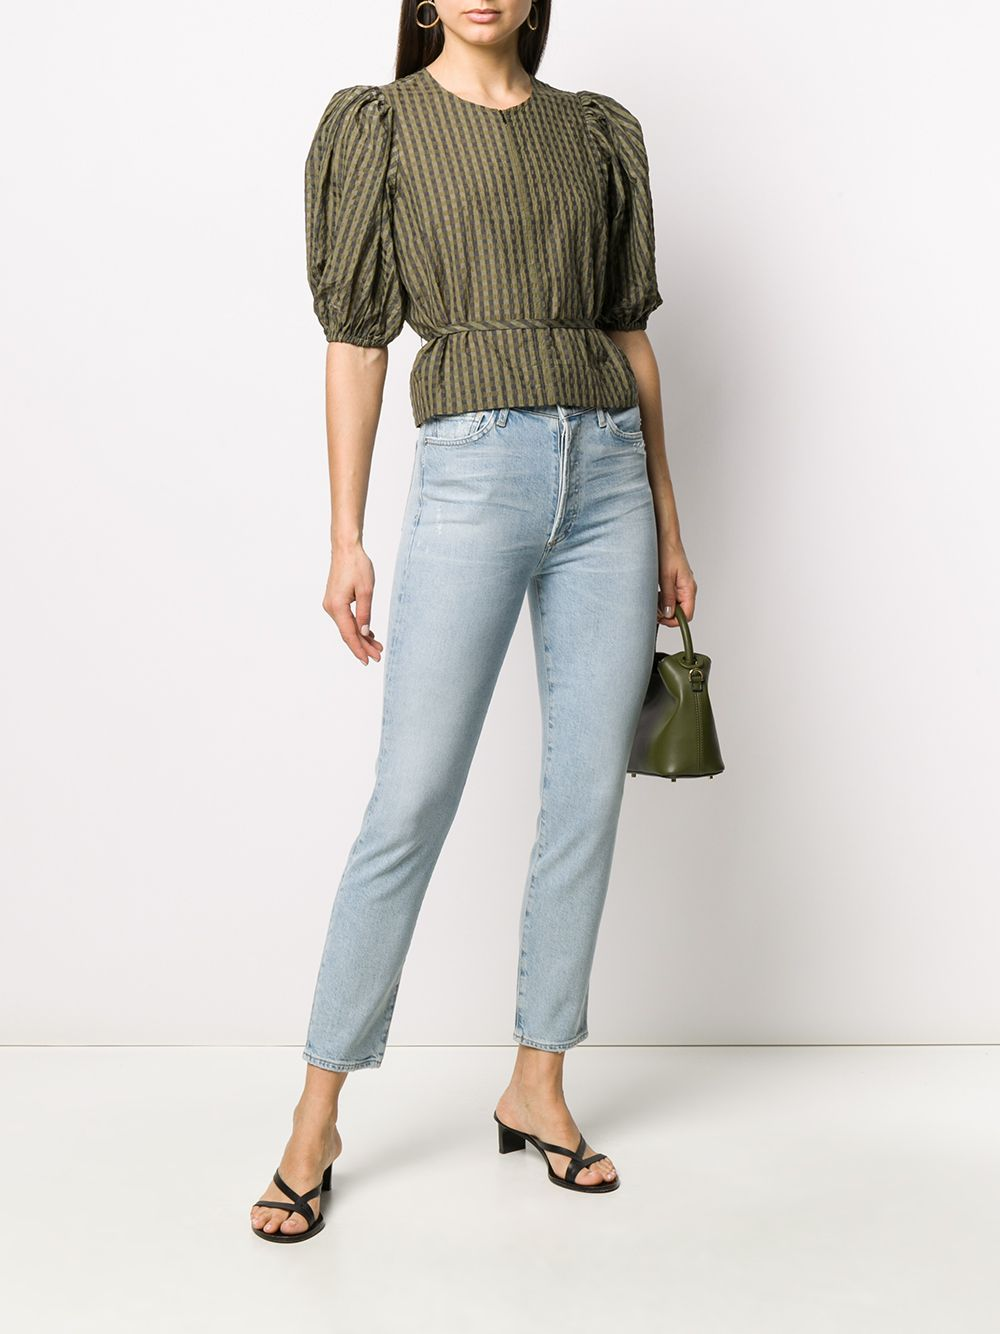 High-Rise Cropped Jeans On Model